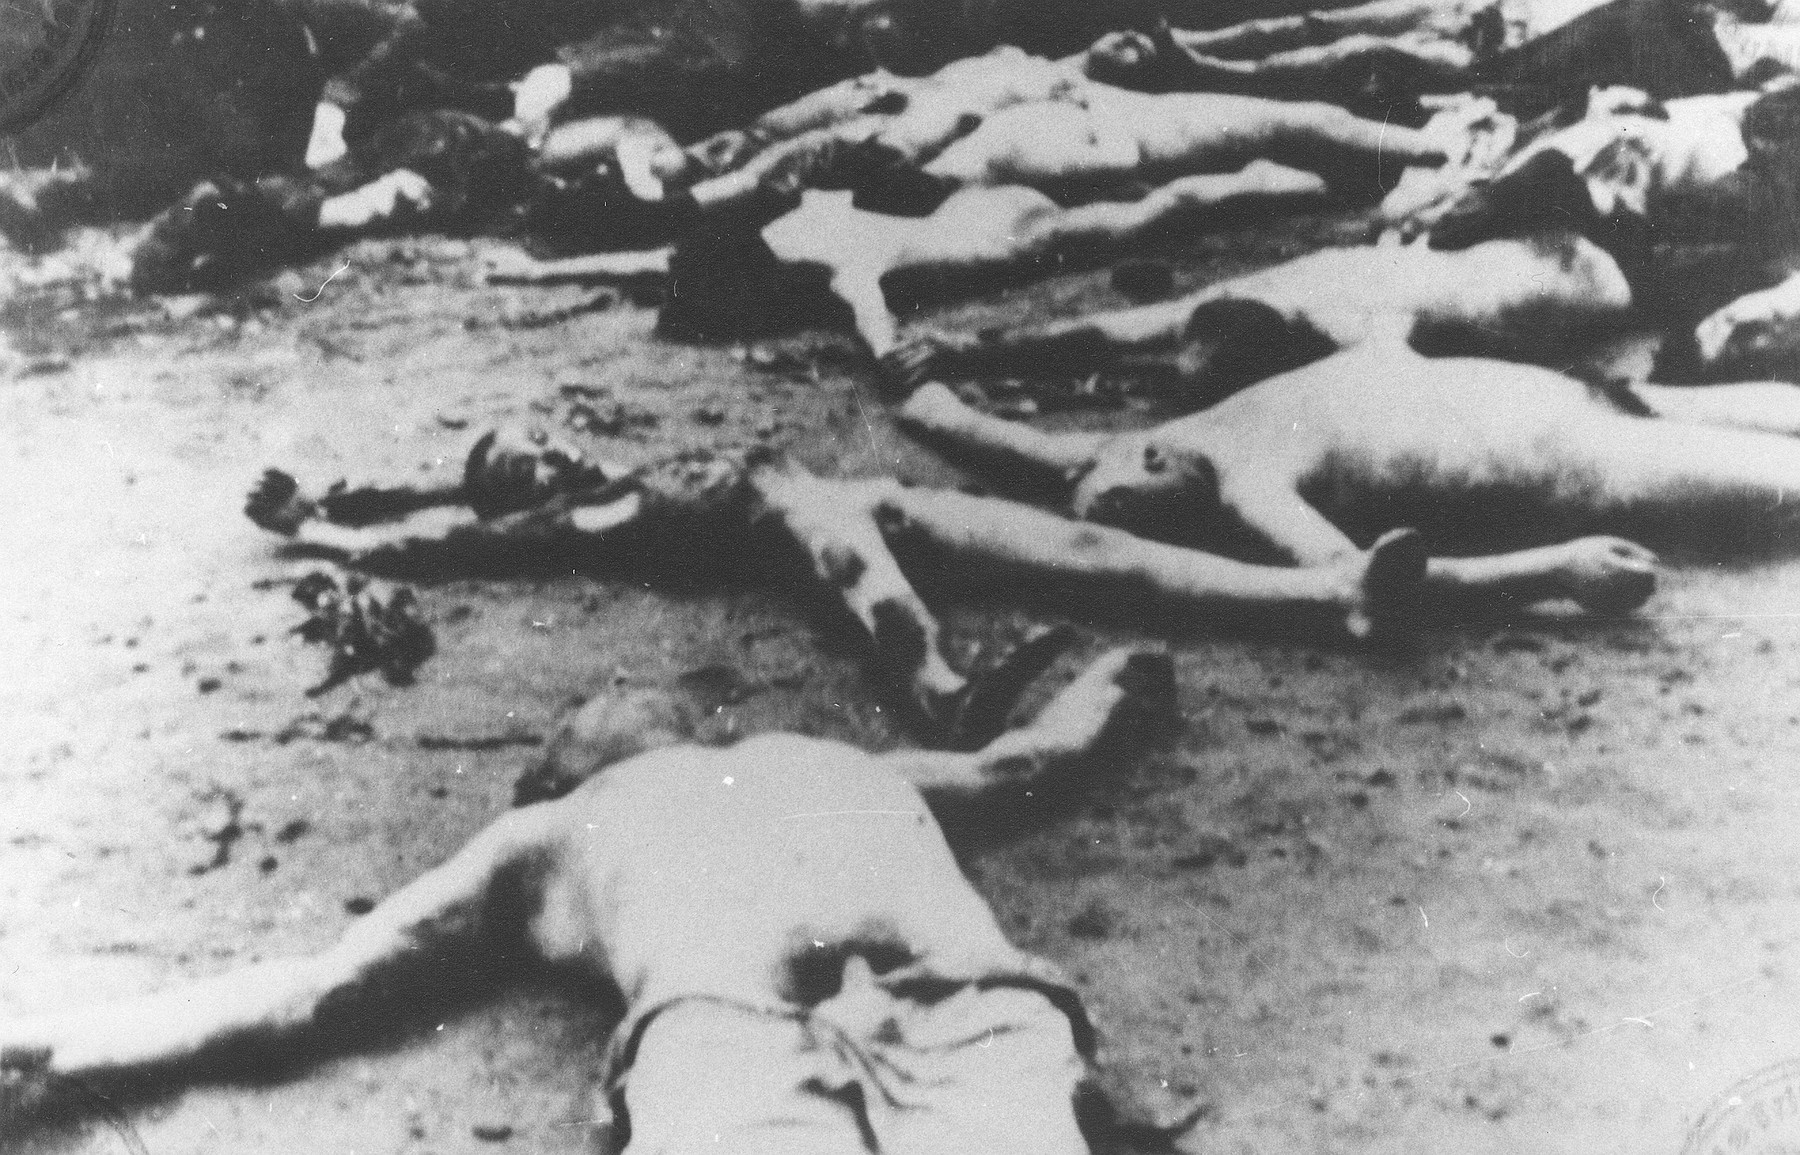 The bodies of Jews who died on the Iasi-Calarasi death train litter the ground where the train stopped at Targu-Frumos.